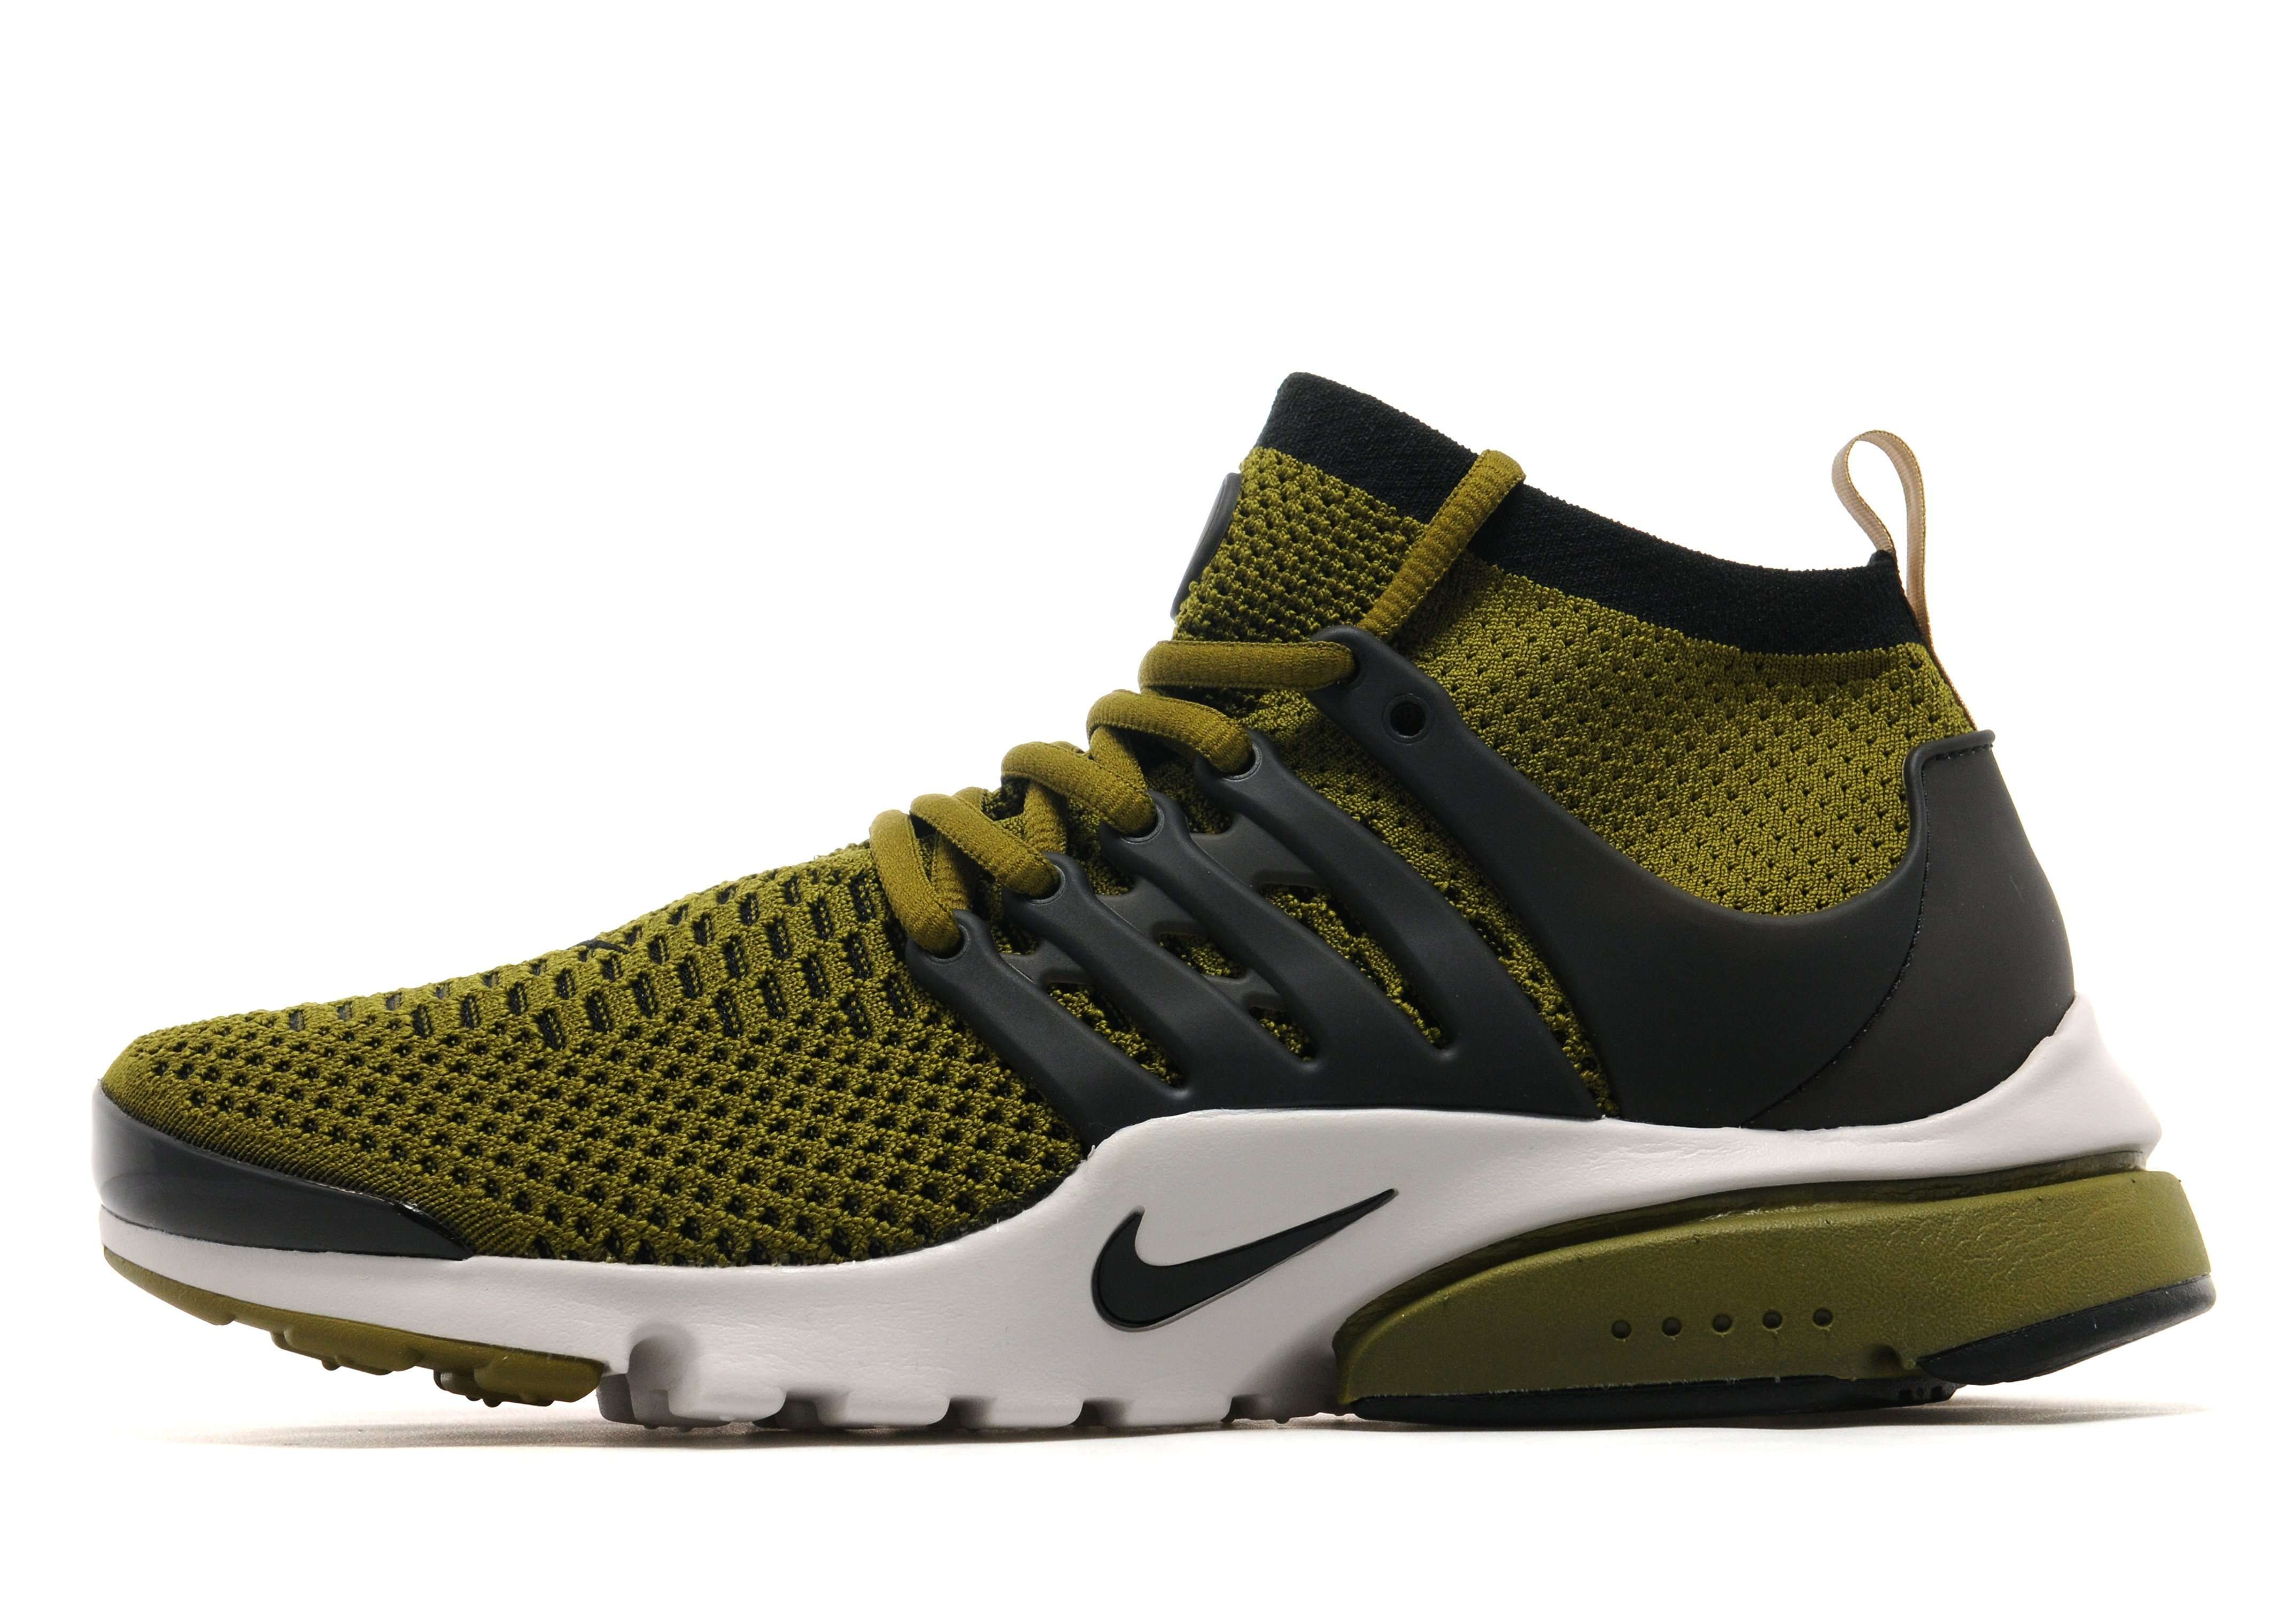 plus récent 4e332 4d426 Nike Air Presto Ultra Flyknit - Shop online for Nike Air ...